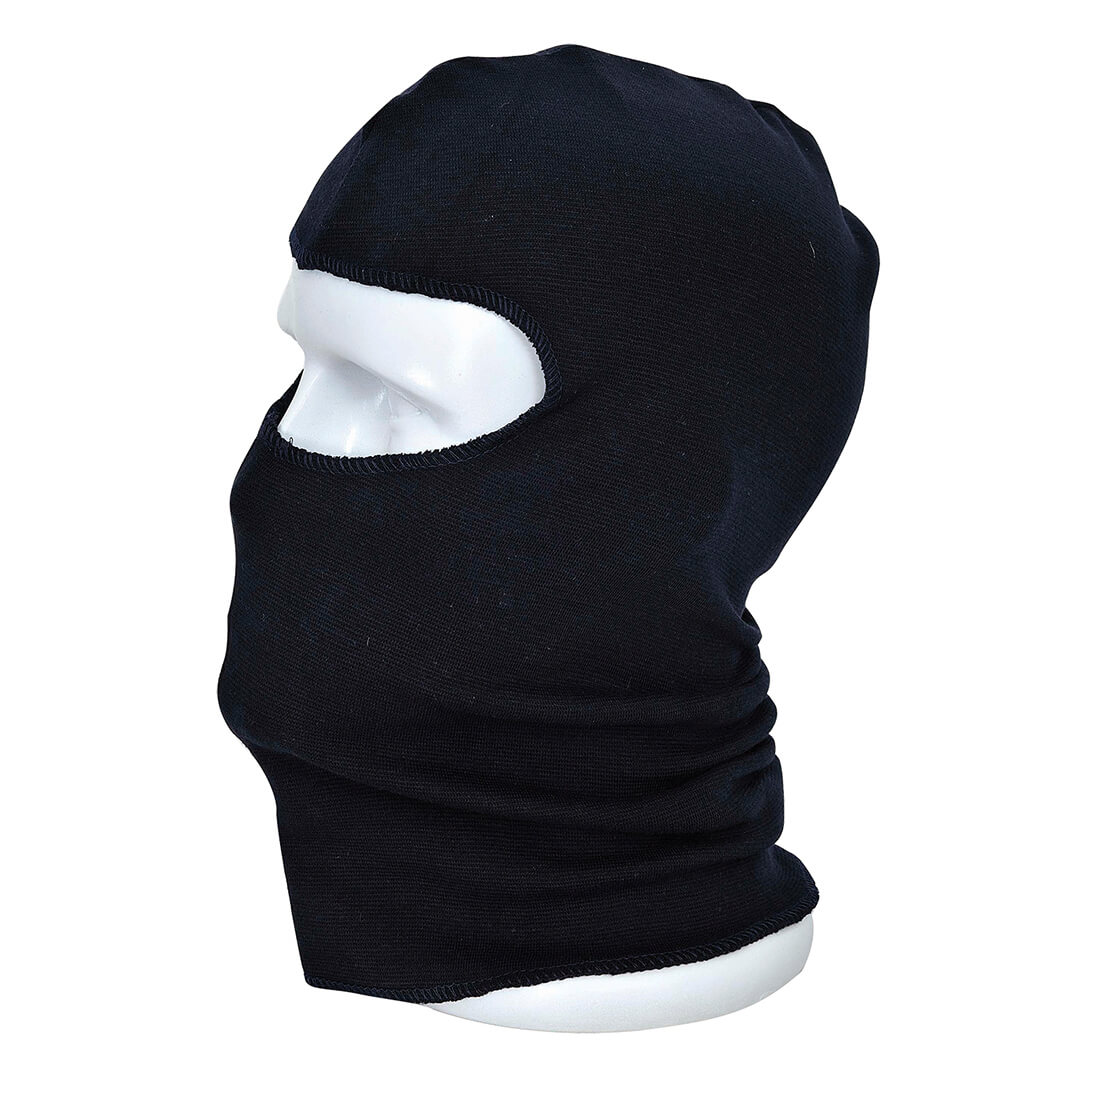 Image of Modaflame Flame Resistant Antistatic Balaclava Navy One Size